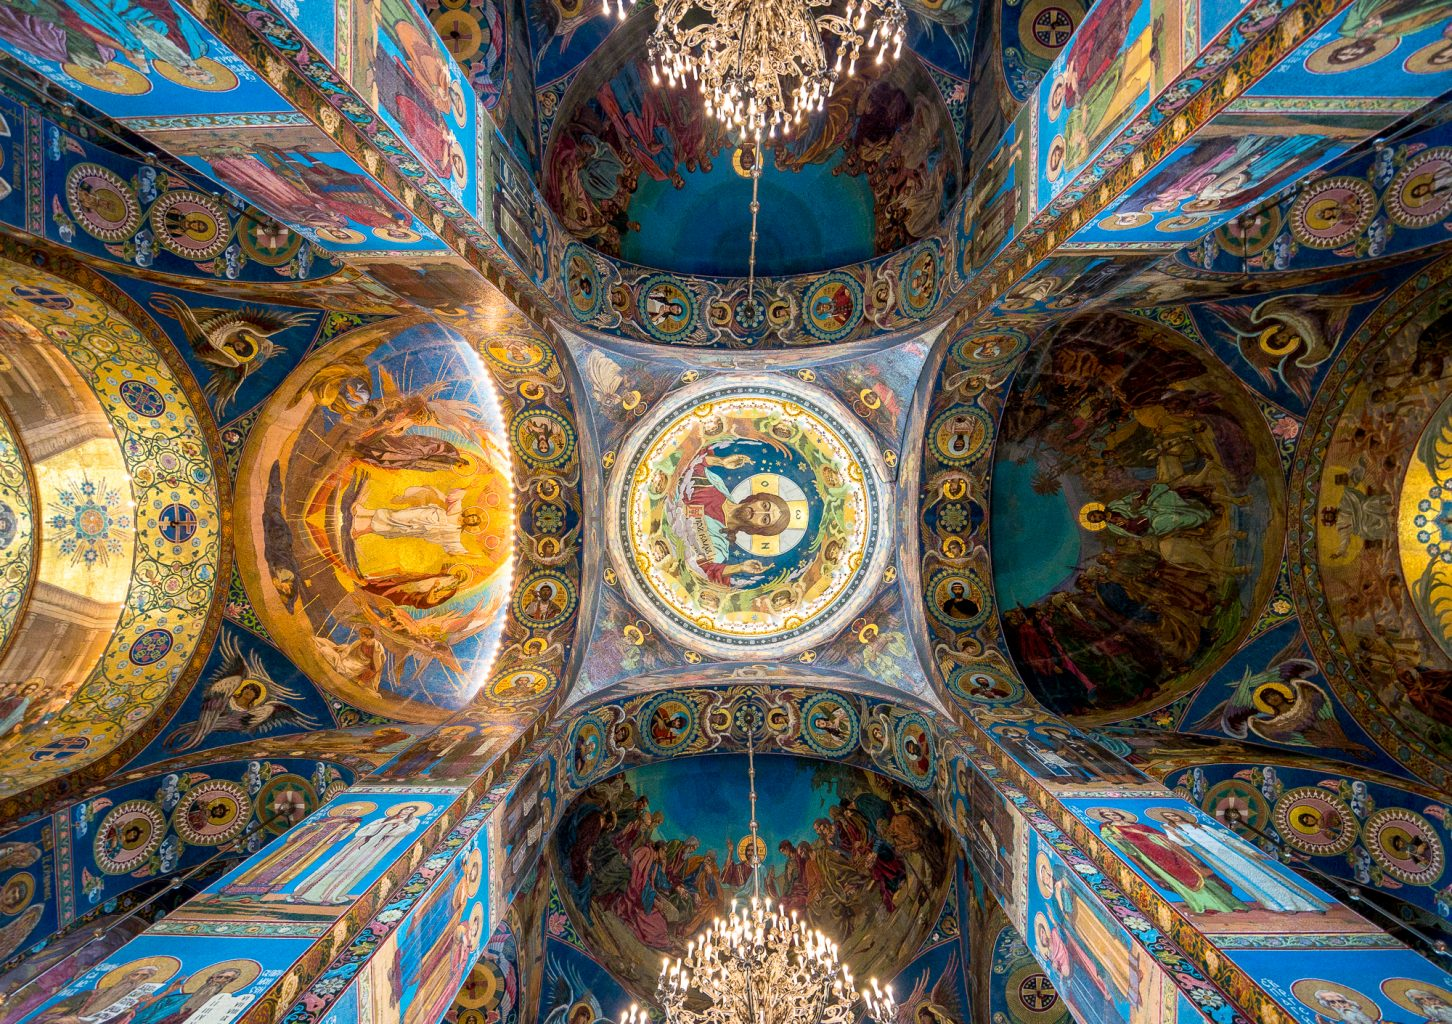 Look up to the Church of the Savior on Spilled Blood ceiling